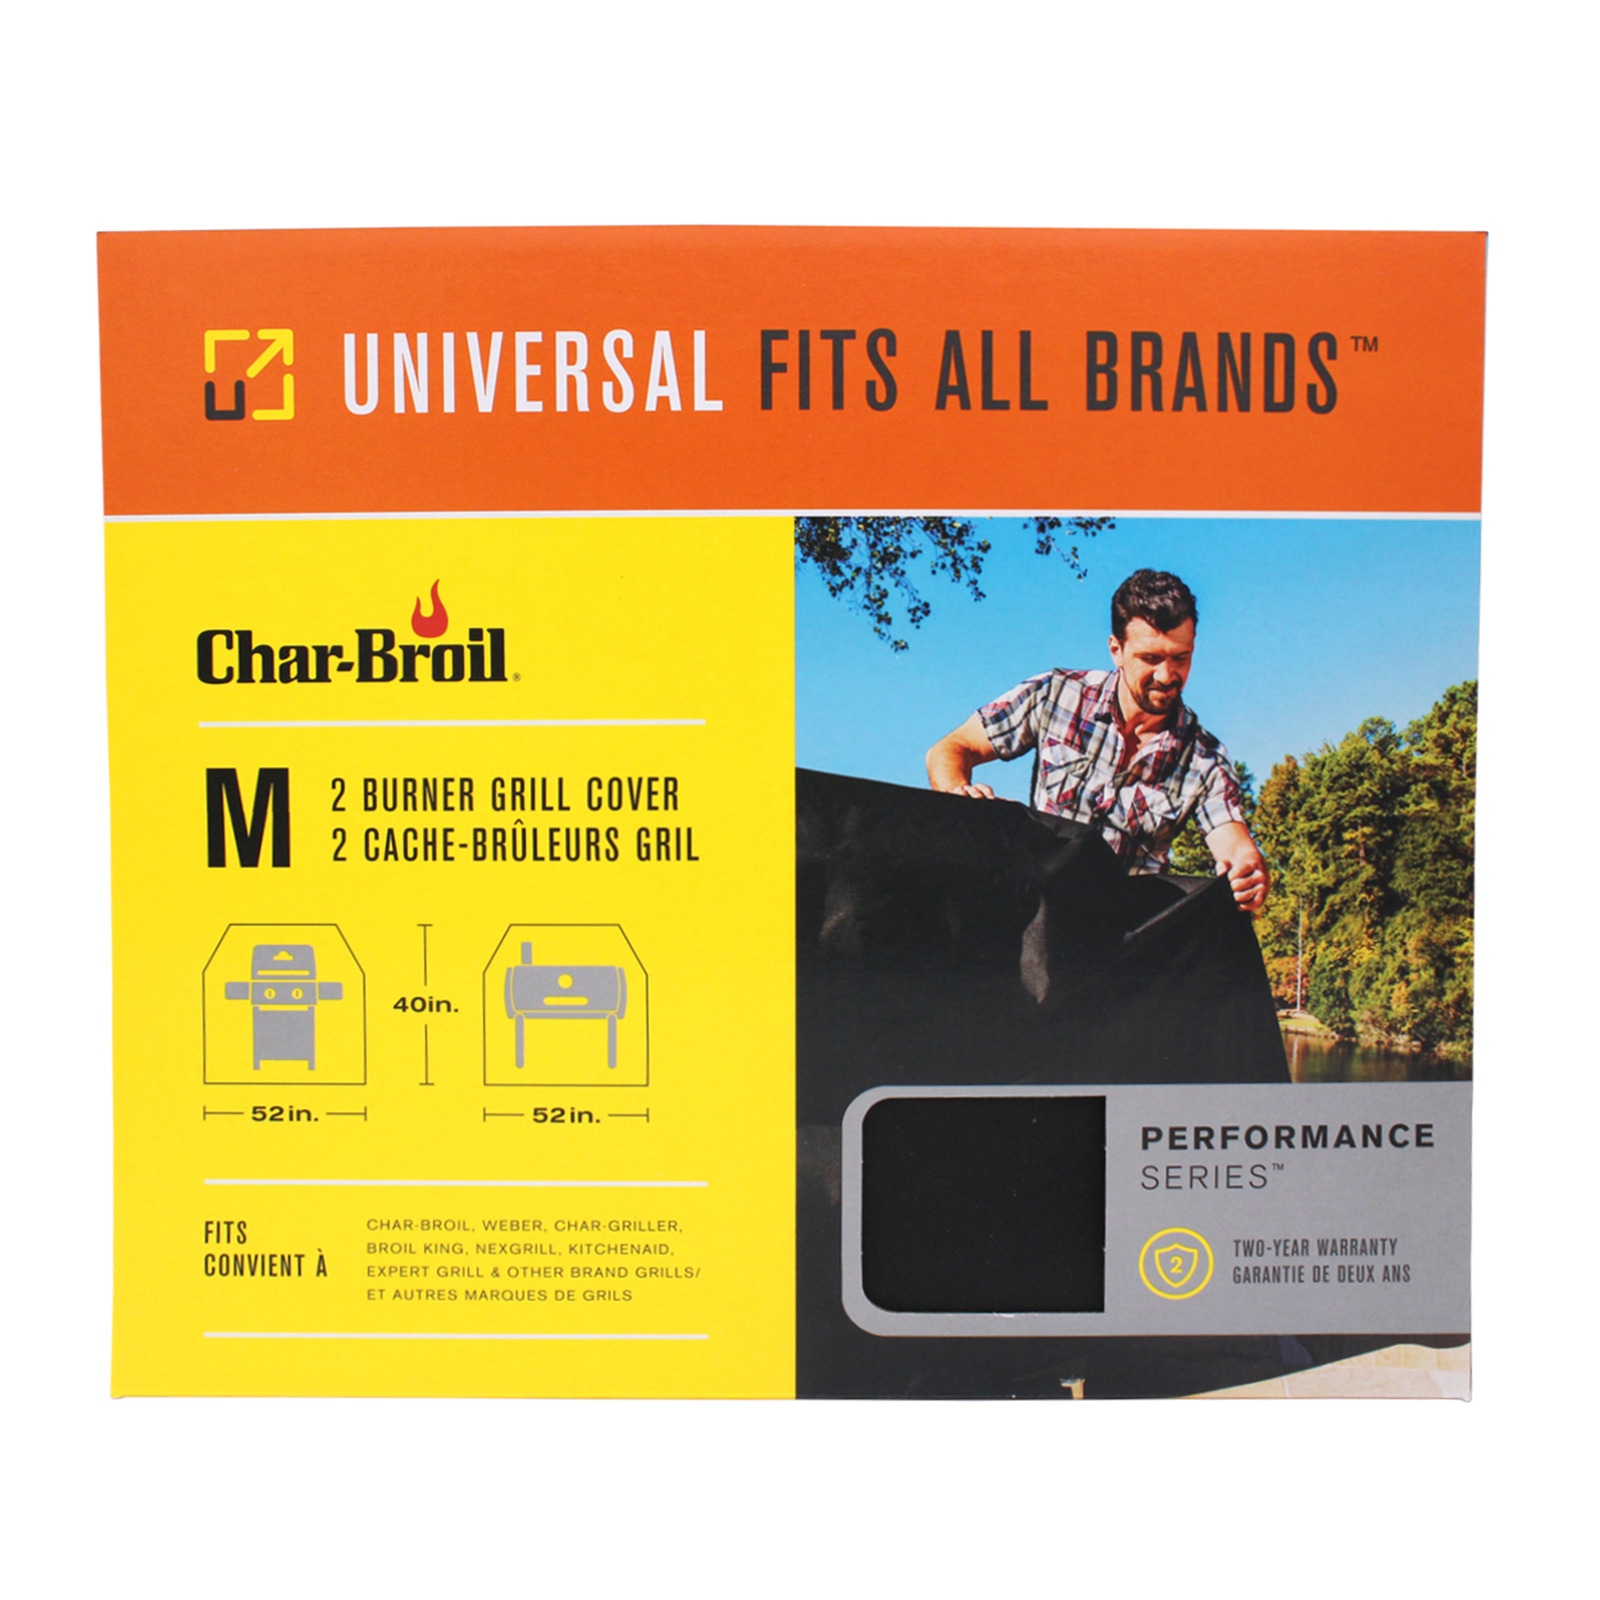 Char-Broil Universal 3-4 Burner Basic Grill Cover (Large)